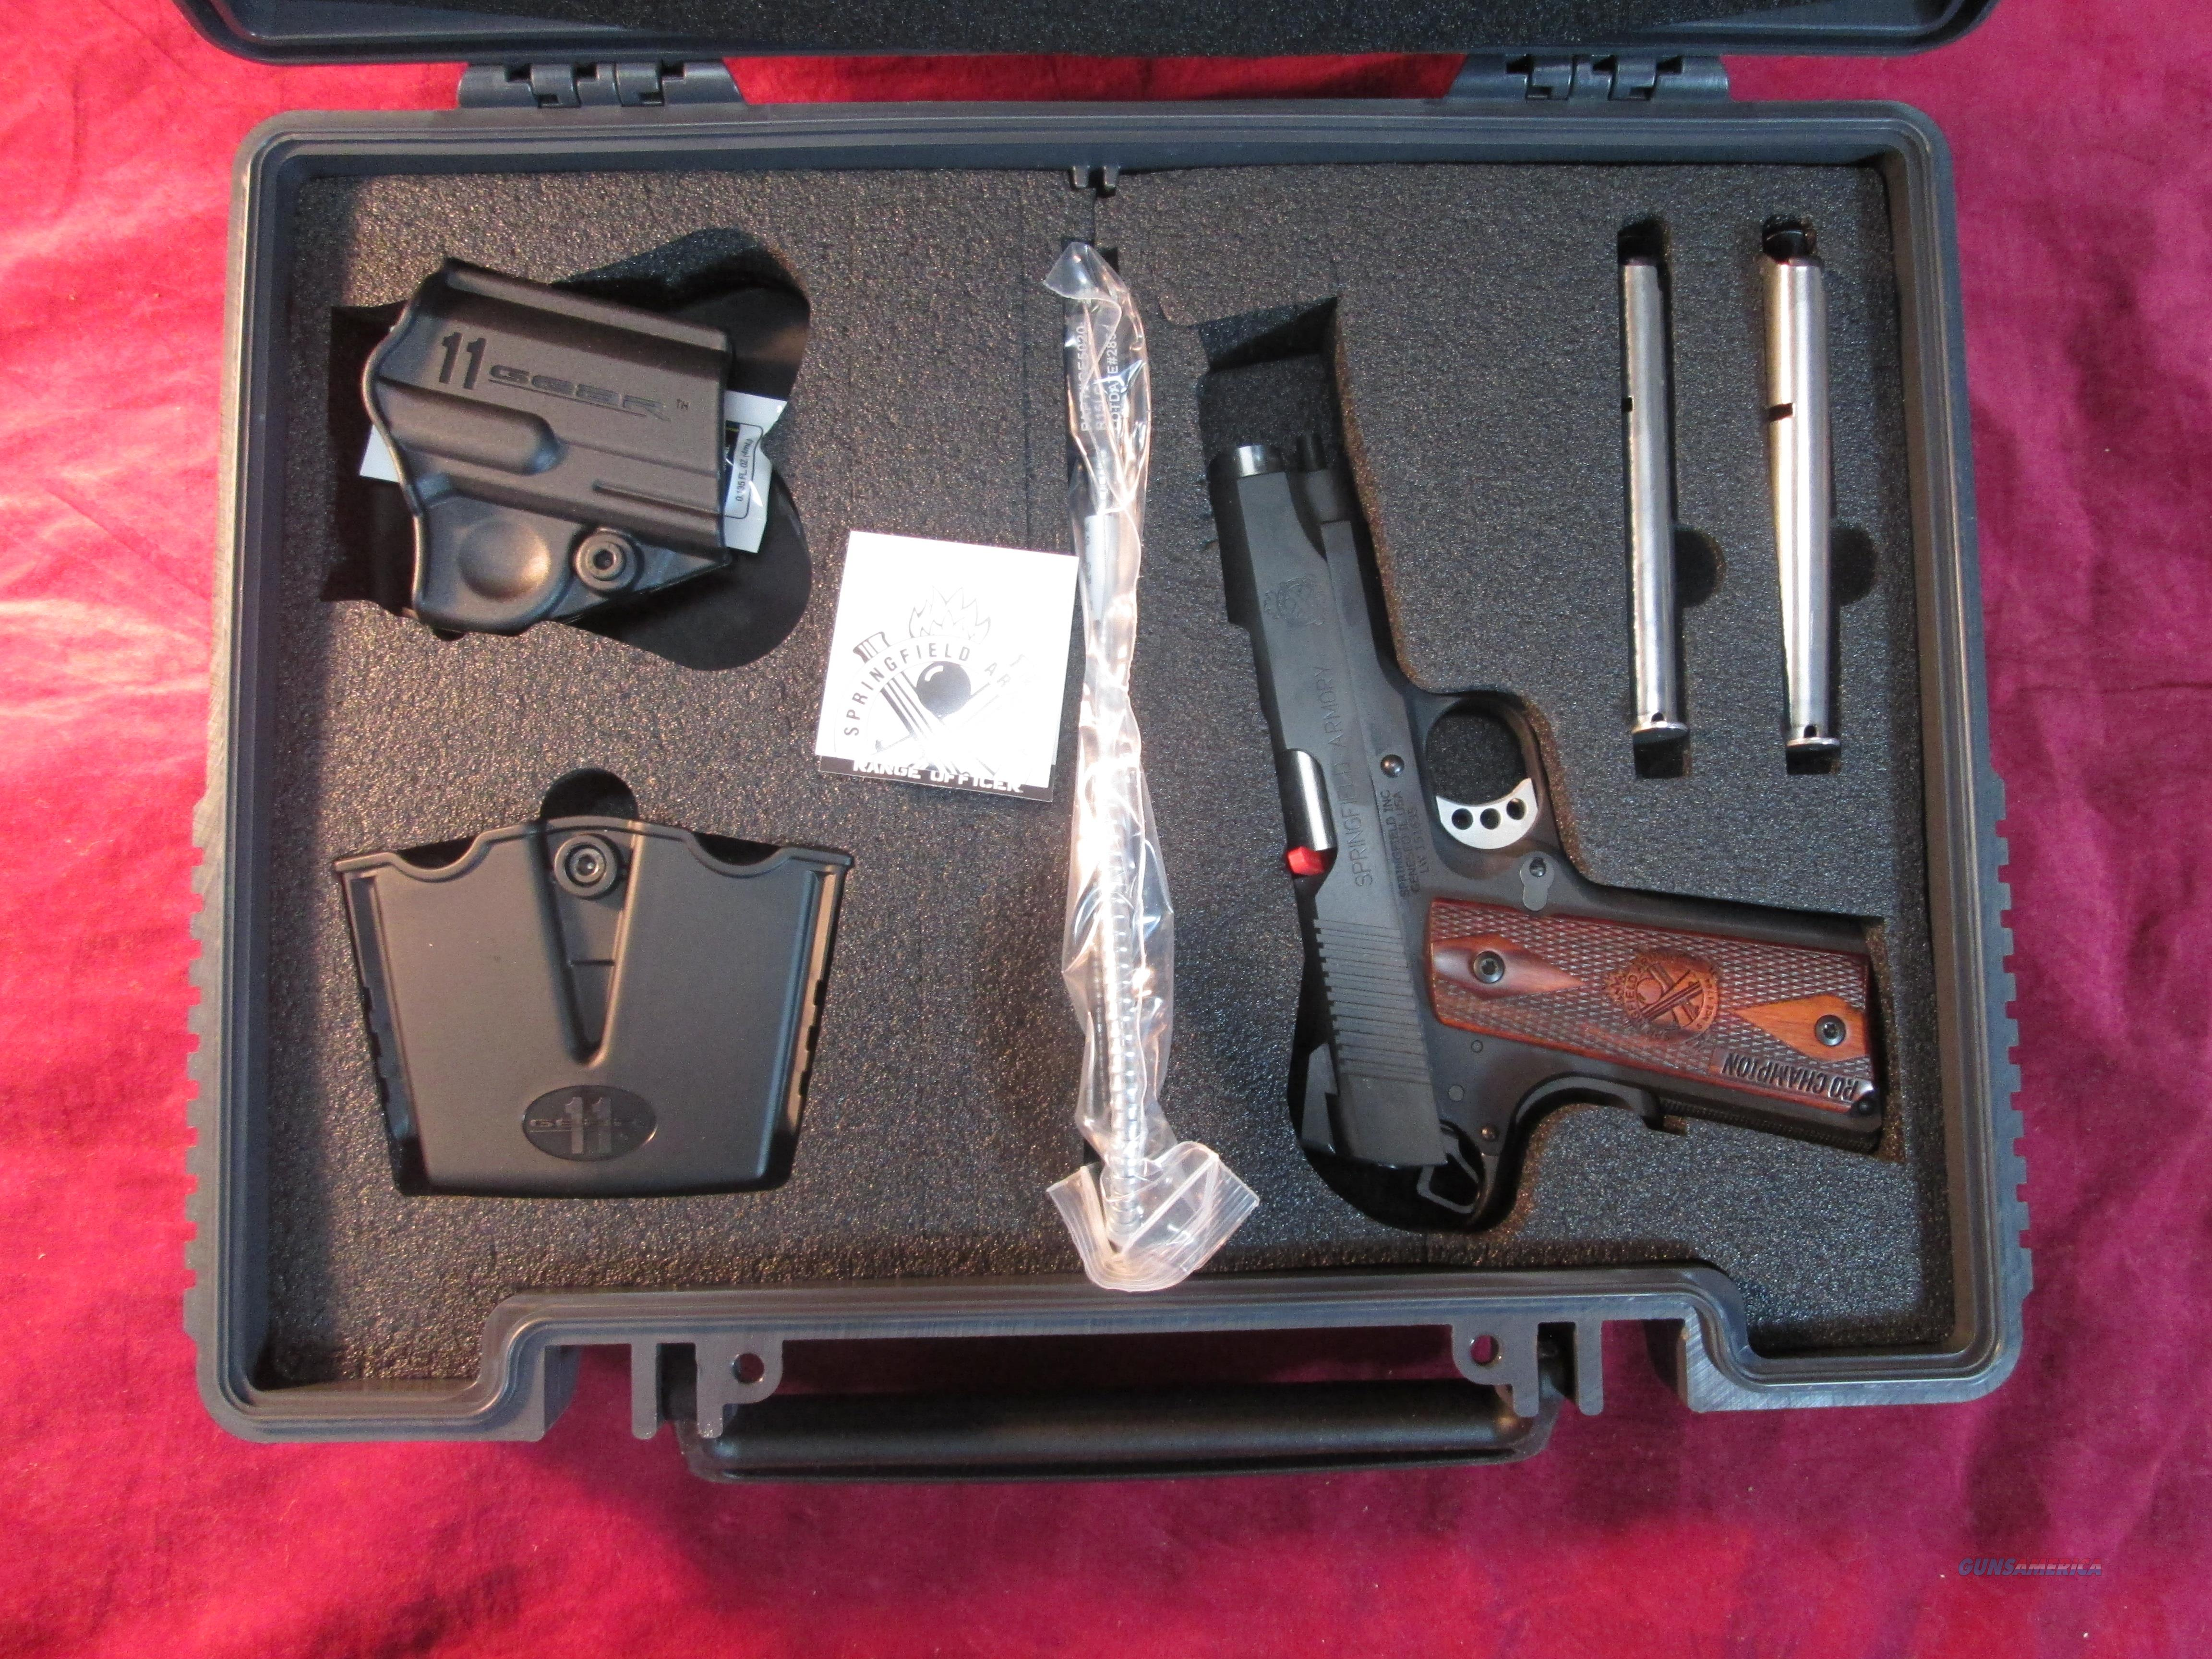 SPRINGFIELD ARMORY 1911 RANGE OFFICER CHAMPION 9MM NEW (PI9137LP)   Guns > Pistols > Springfield Armory Pistols > 1911 Type